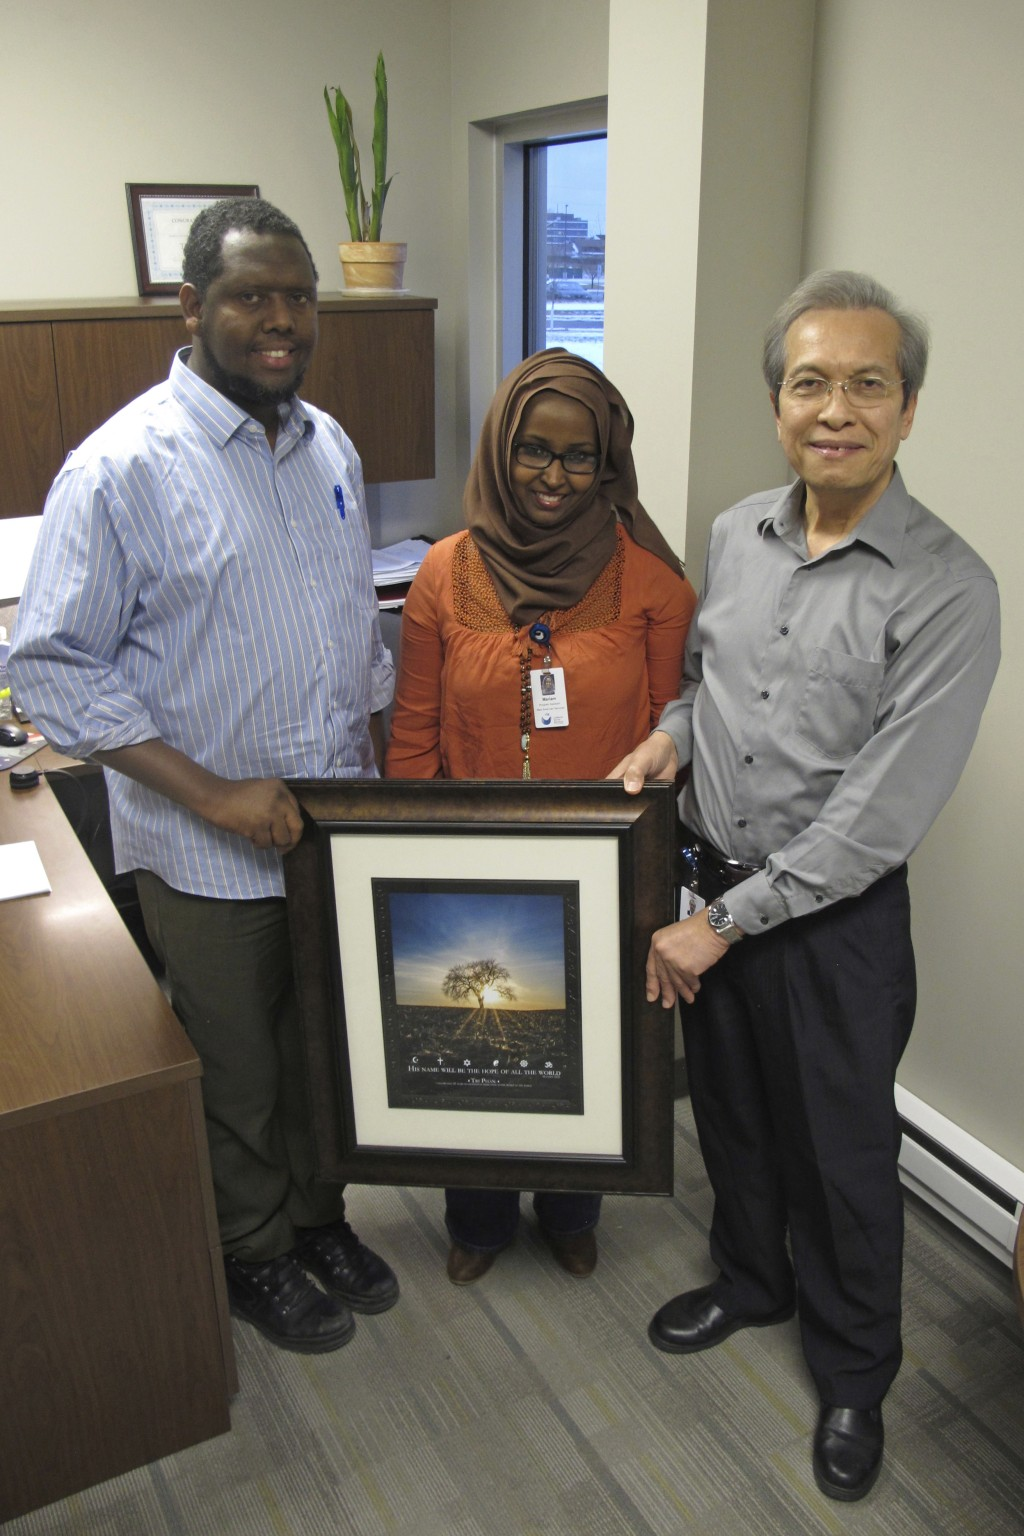 In this Dec. 15, 2017 photo, Tri Phan, right, poses with fellow Lutheran Social Services staff members Abdiwali Sharif-Abdinasir and Mariam Bassoma at...